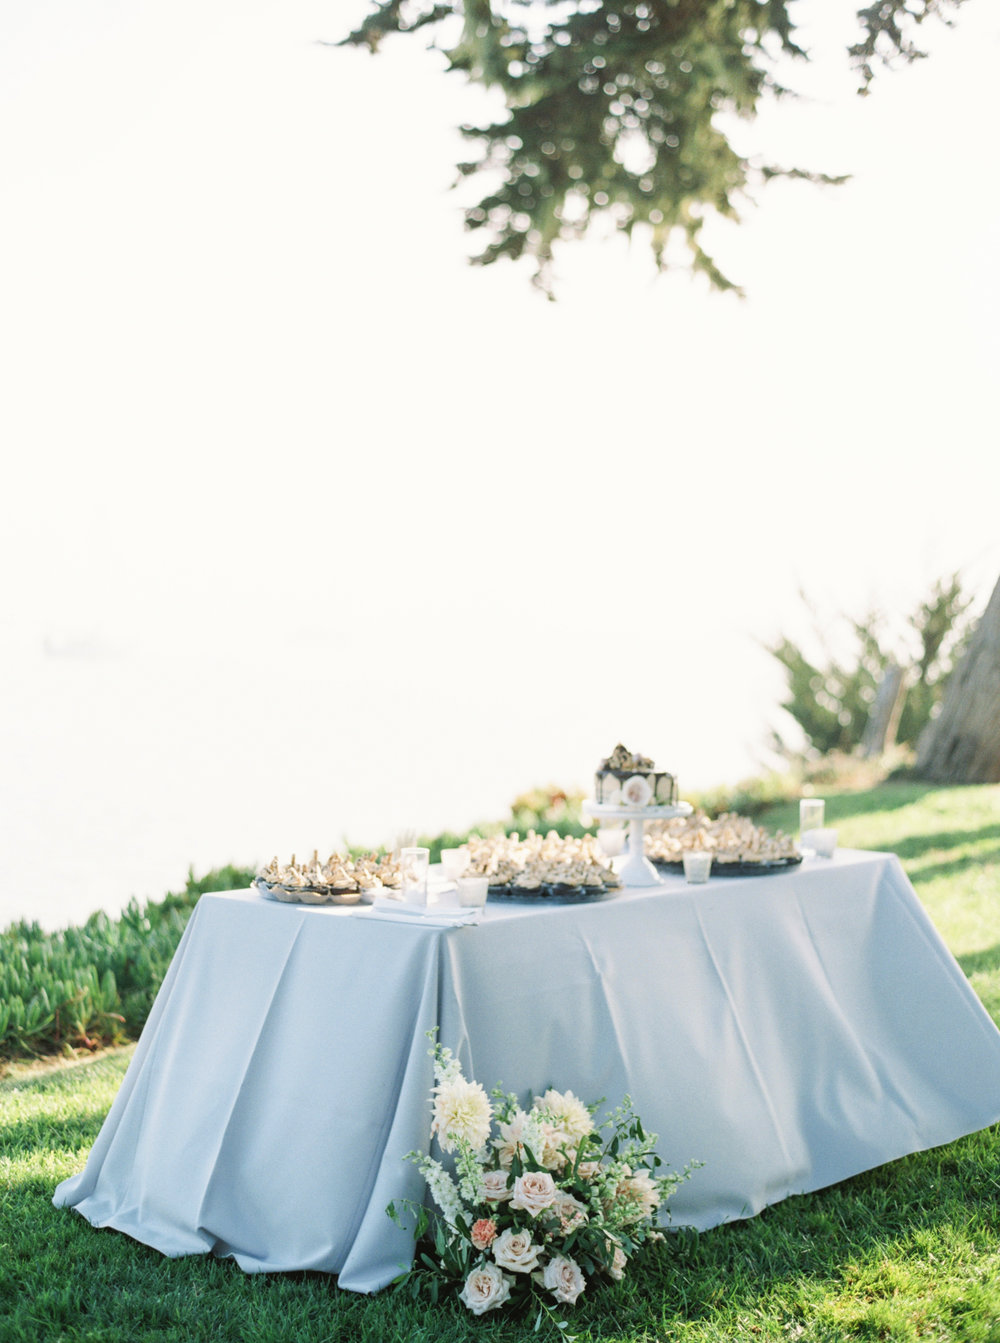 trynhphoto_socal_sf_halfmoon_bay_wedding_photographer_JA-587.jpg